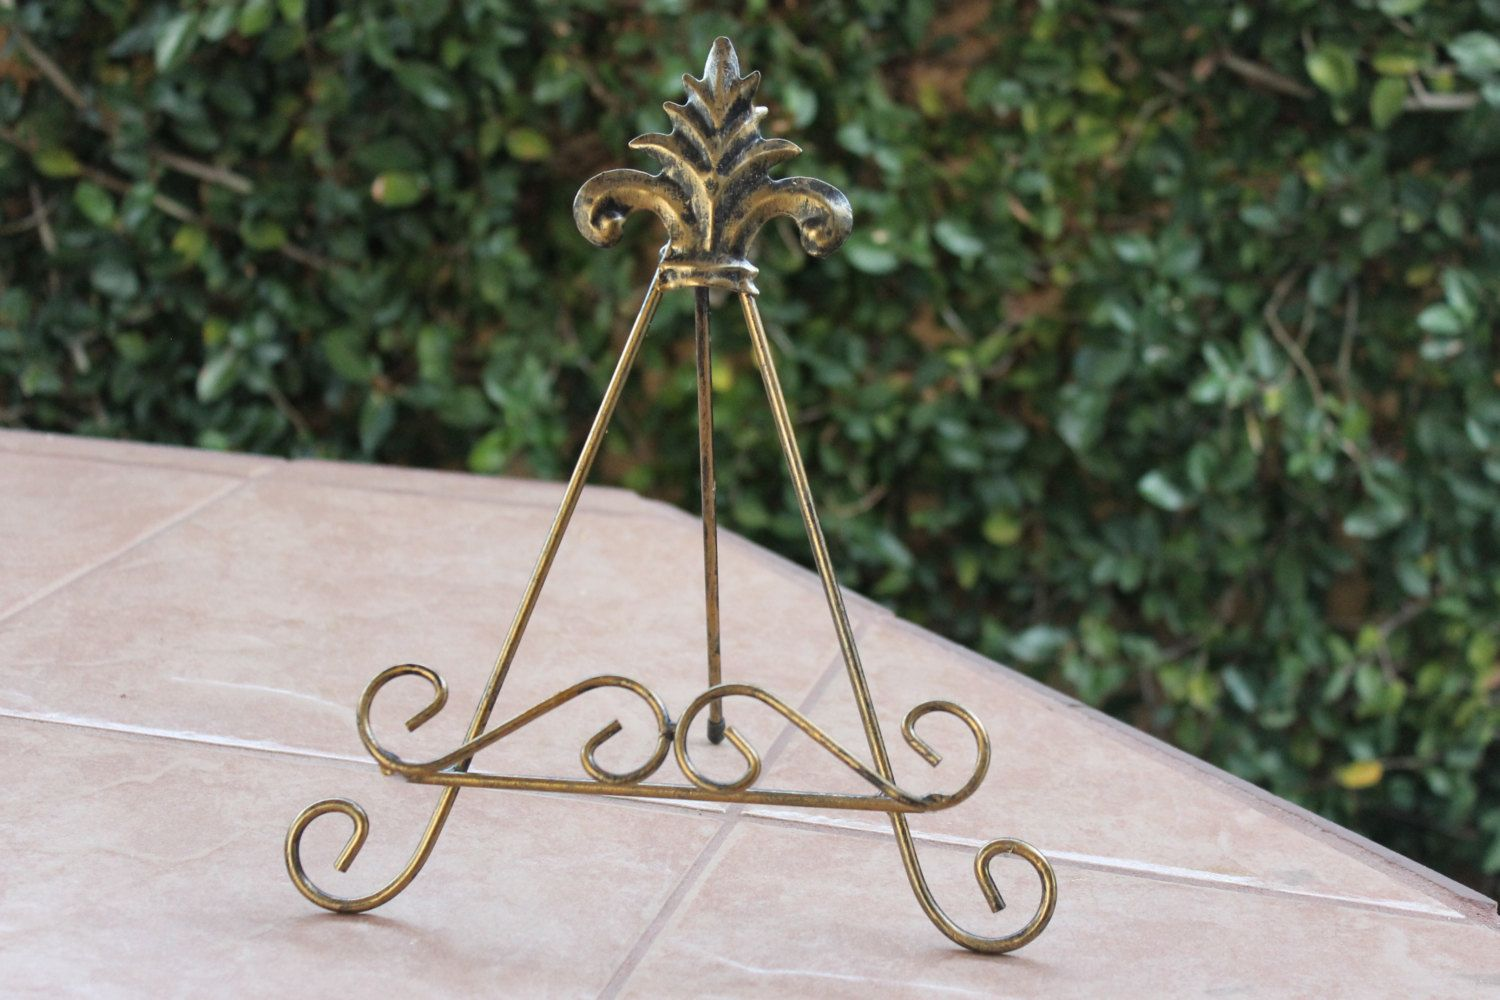 Decorative Rustic Iron Cutting Board Stand Hand Made Hammered and Welded Metal Black or Gold by LetsEngrave on Etsy https://www.etsy.com/listing/208197372/decorative-rustic-iron-cutting-board